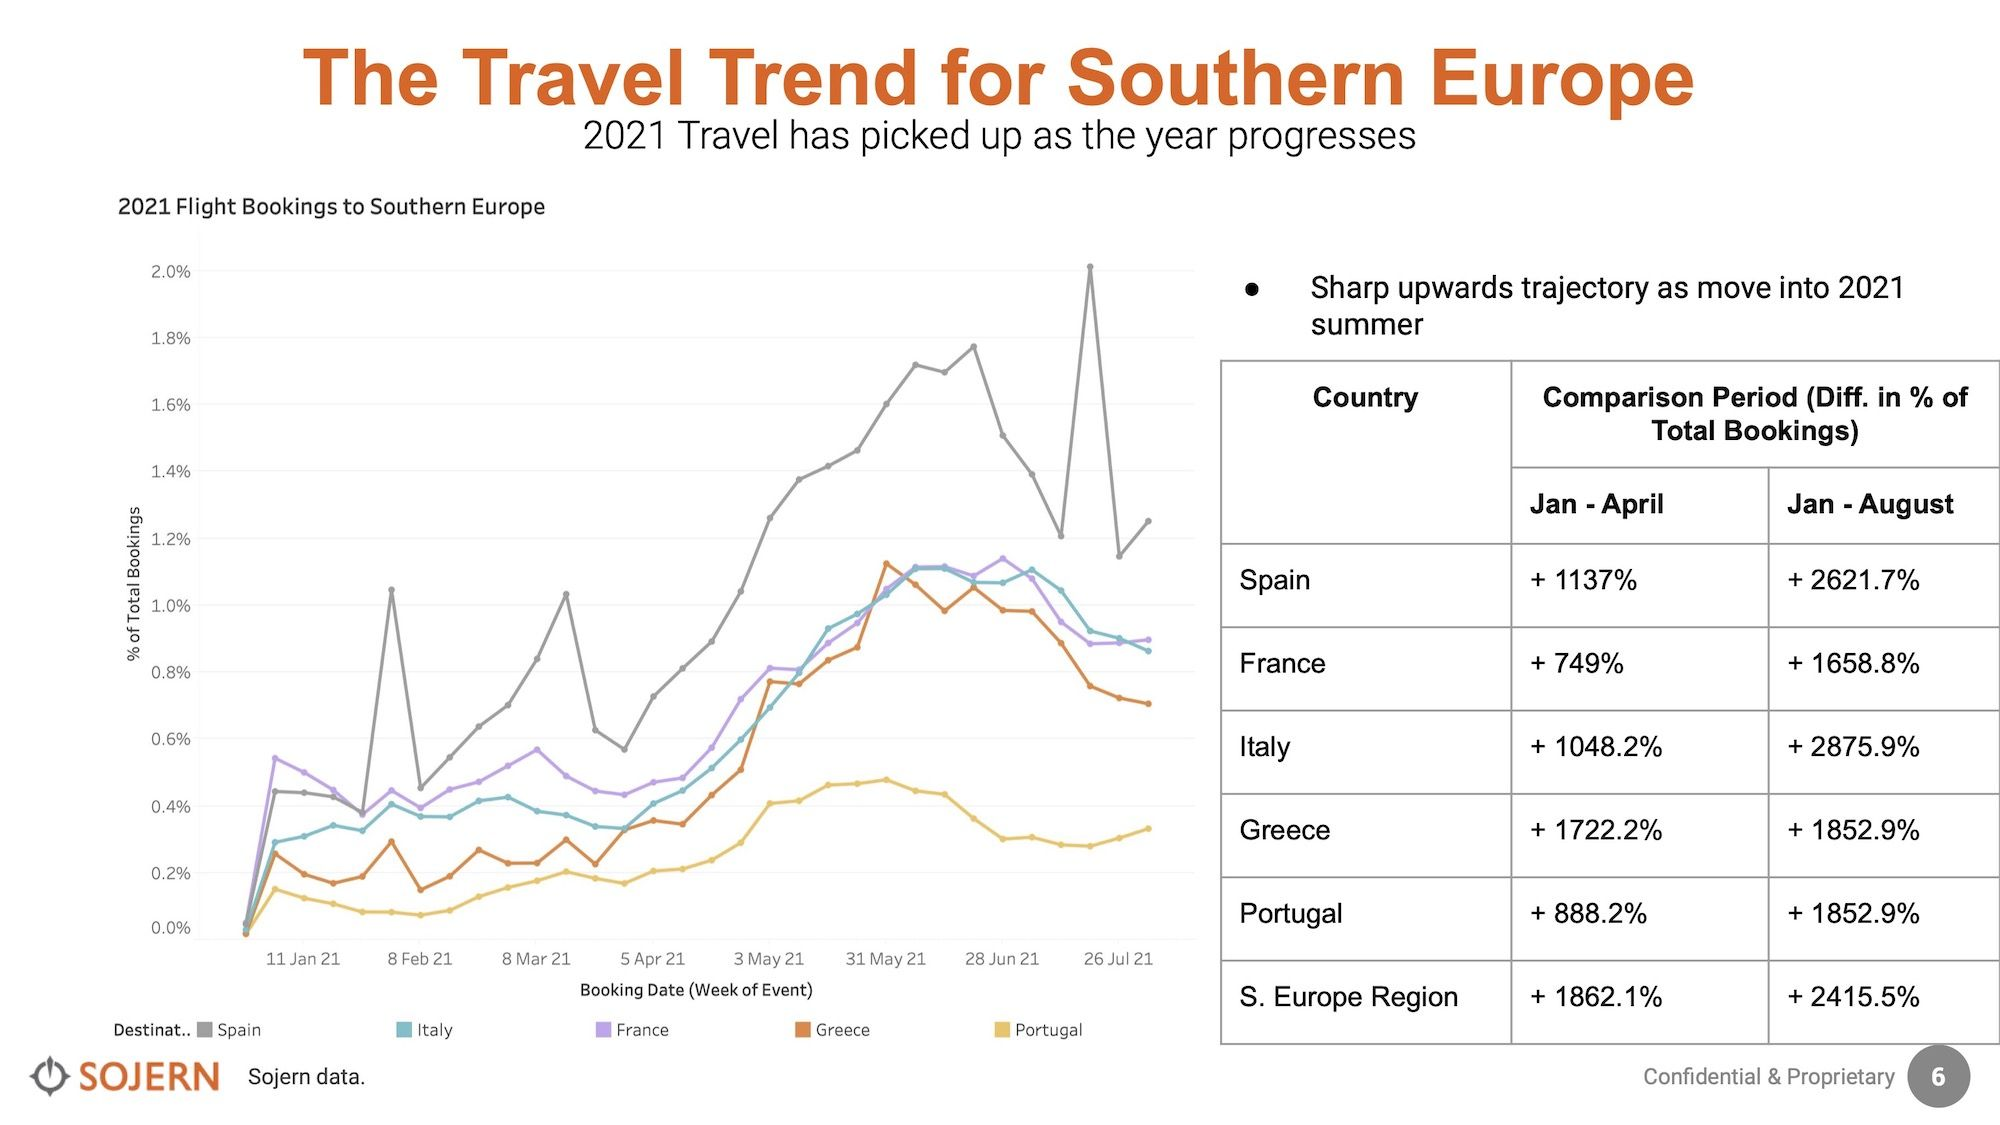 Sojern-Southern-Europe-3Travel-Trends-Insights-23-Aug-2021.jpg